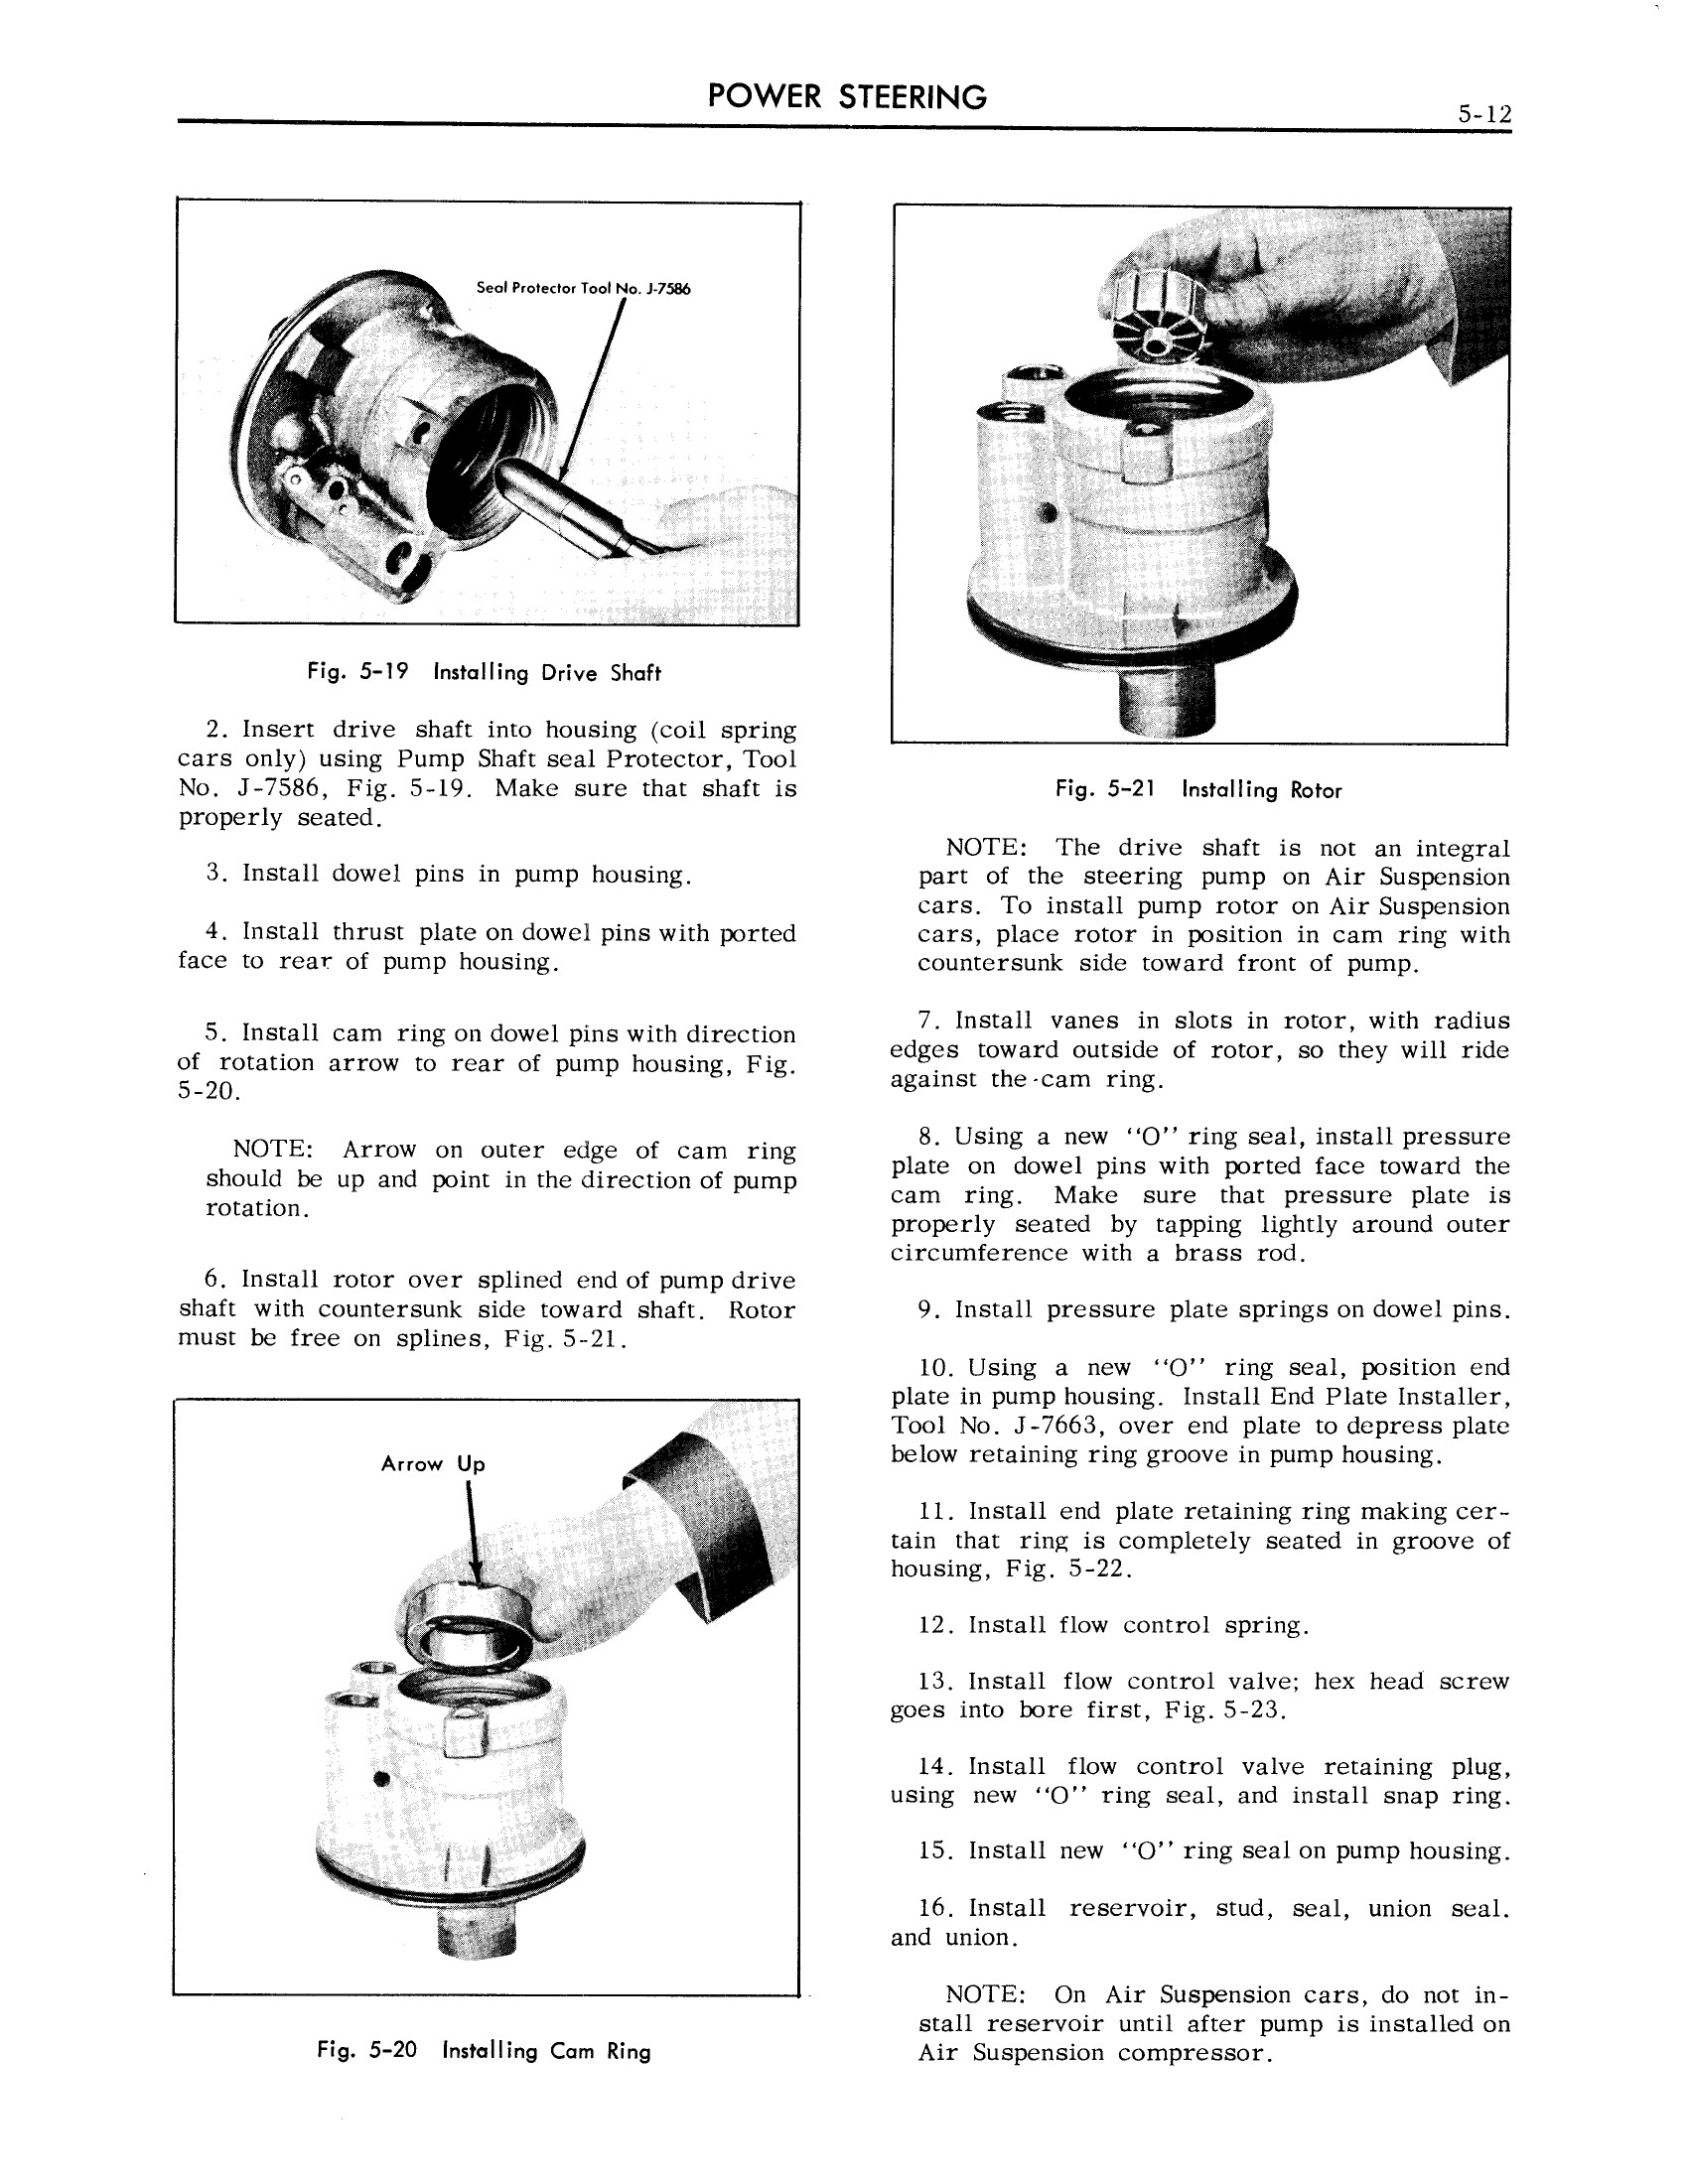 1959 Cadillac Shop Manual- Power Steering Page 12 of 31